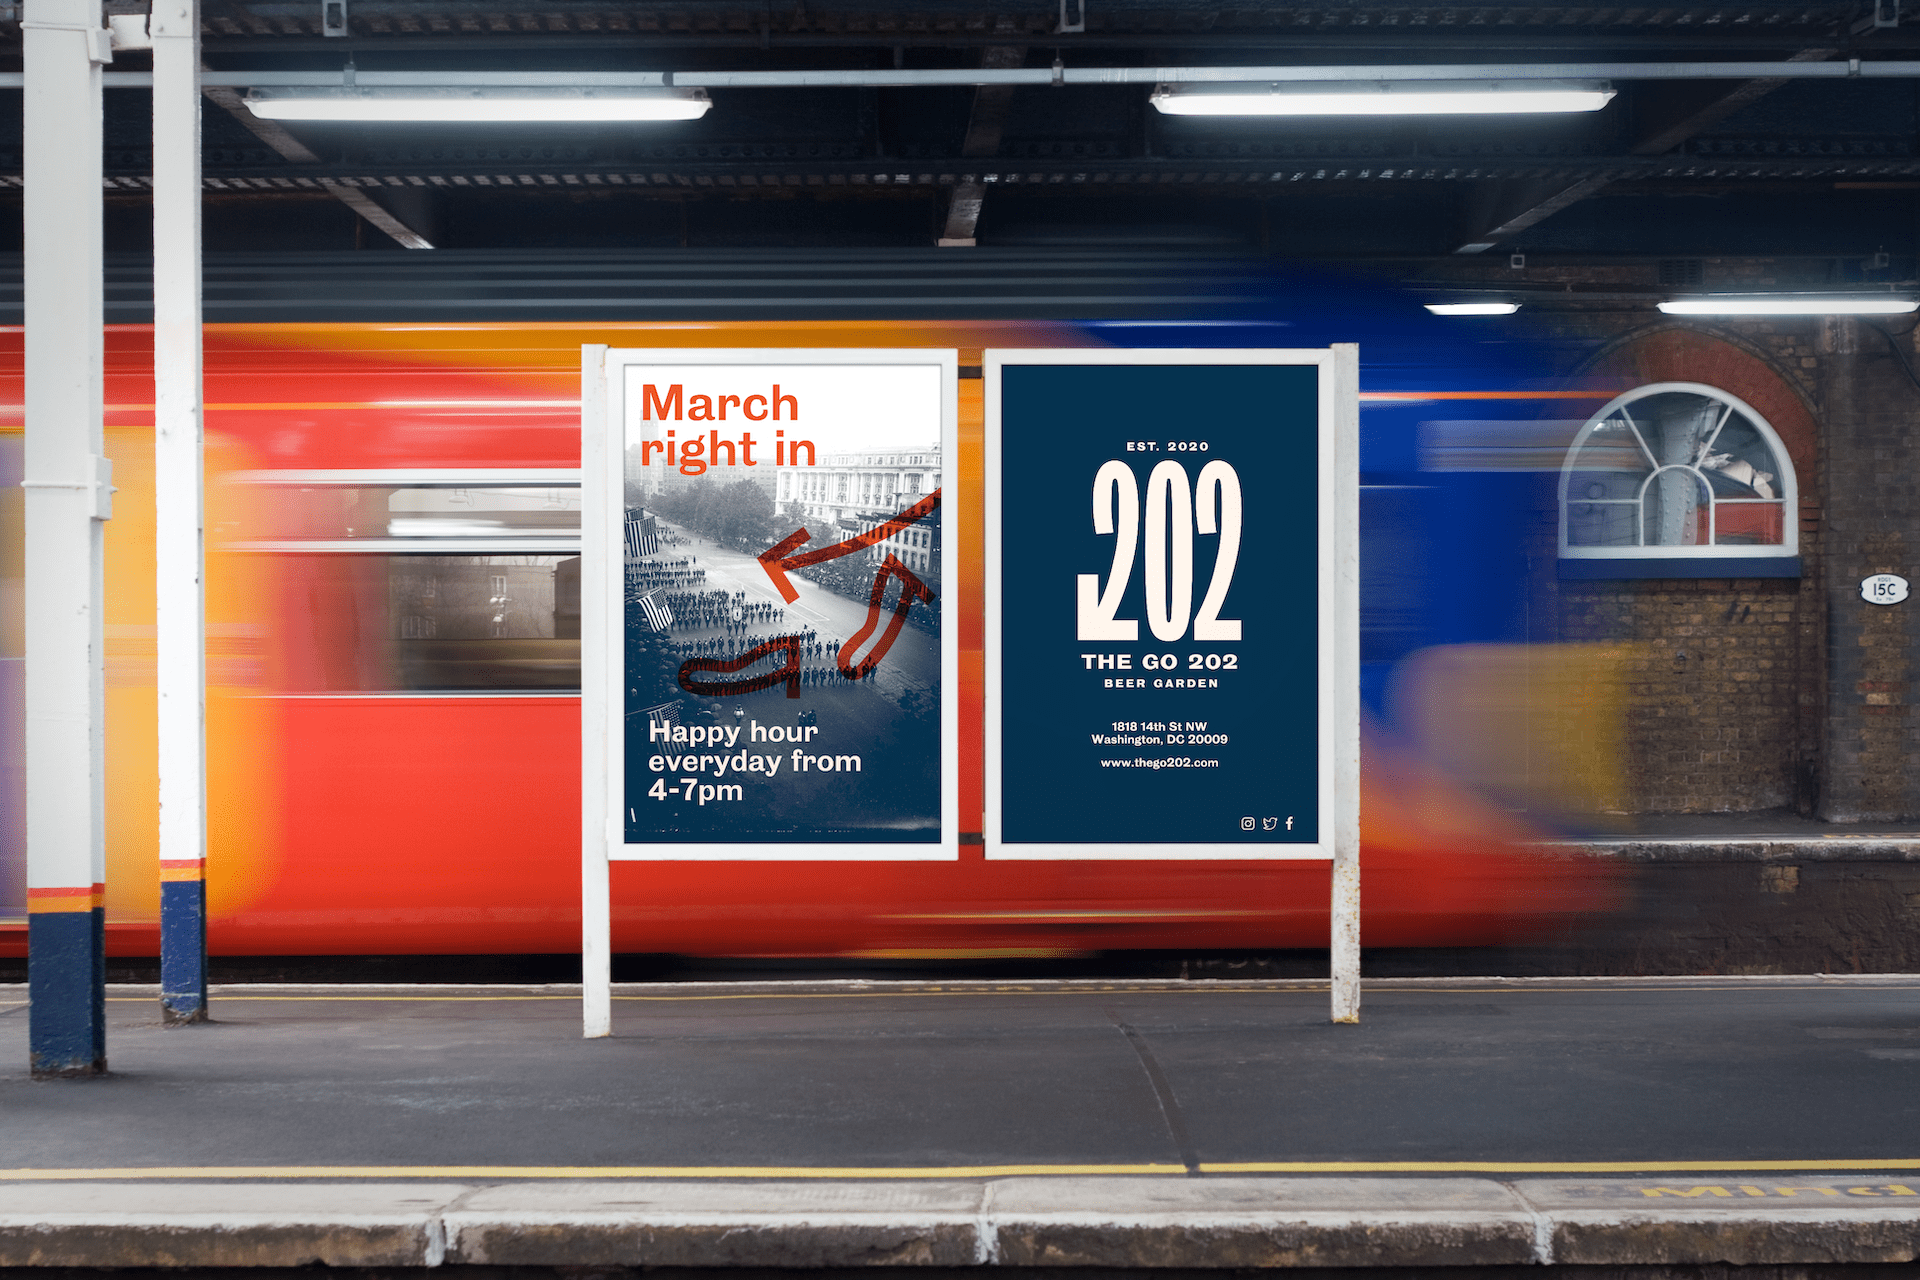 Train station poster holding the print advertisement for The Go 202